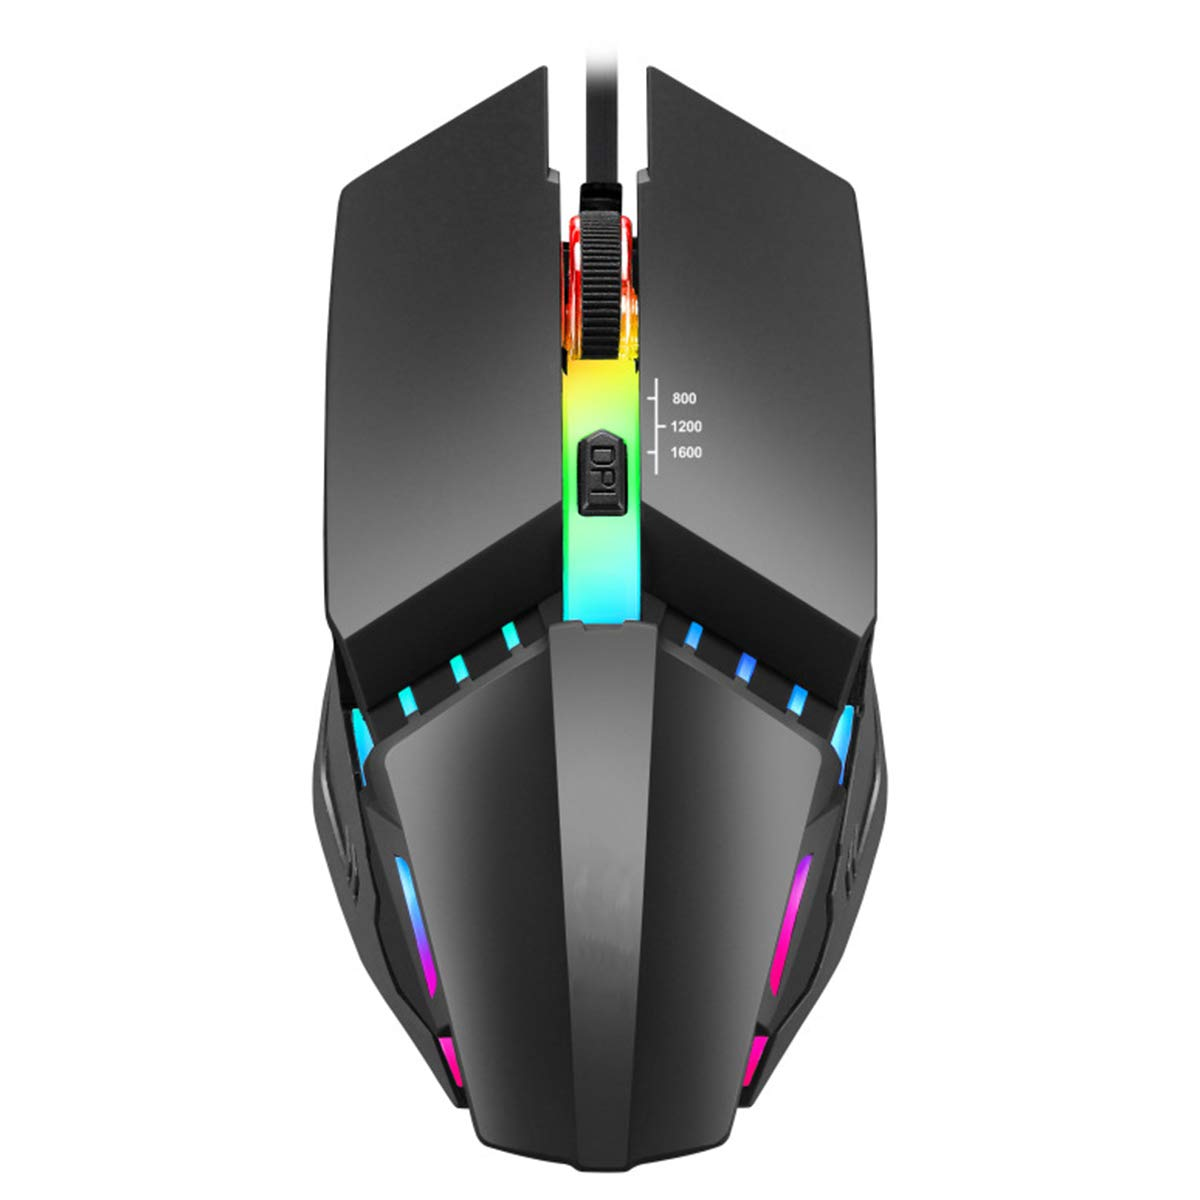 DaMohony Gaming Mouse, Ergonomic Wired Gaming Mouse 4 Button 1600DPI USB Computer Mouse With Backlight for PC Laptop